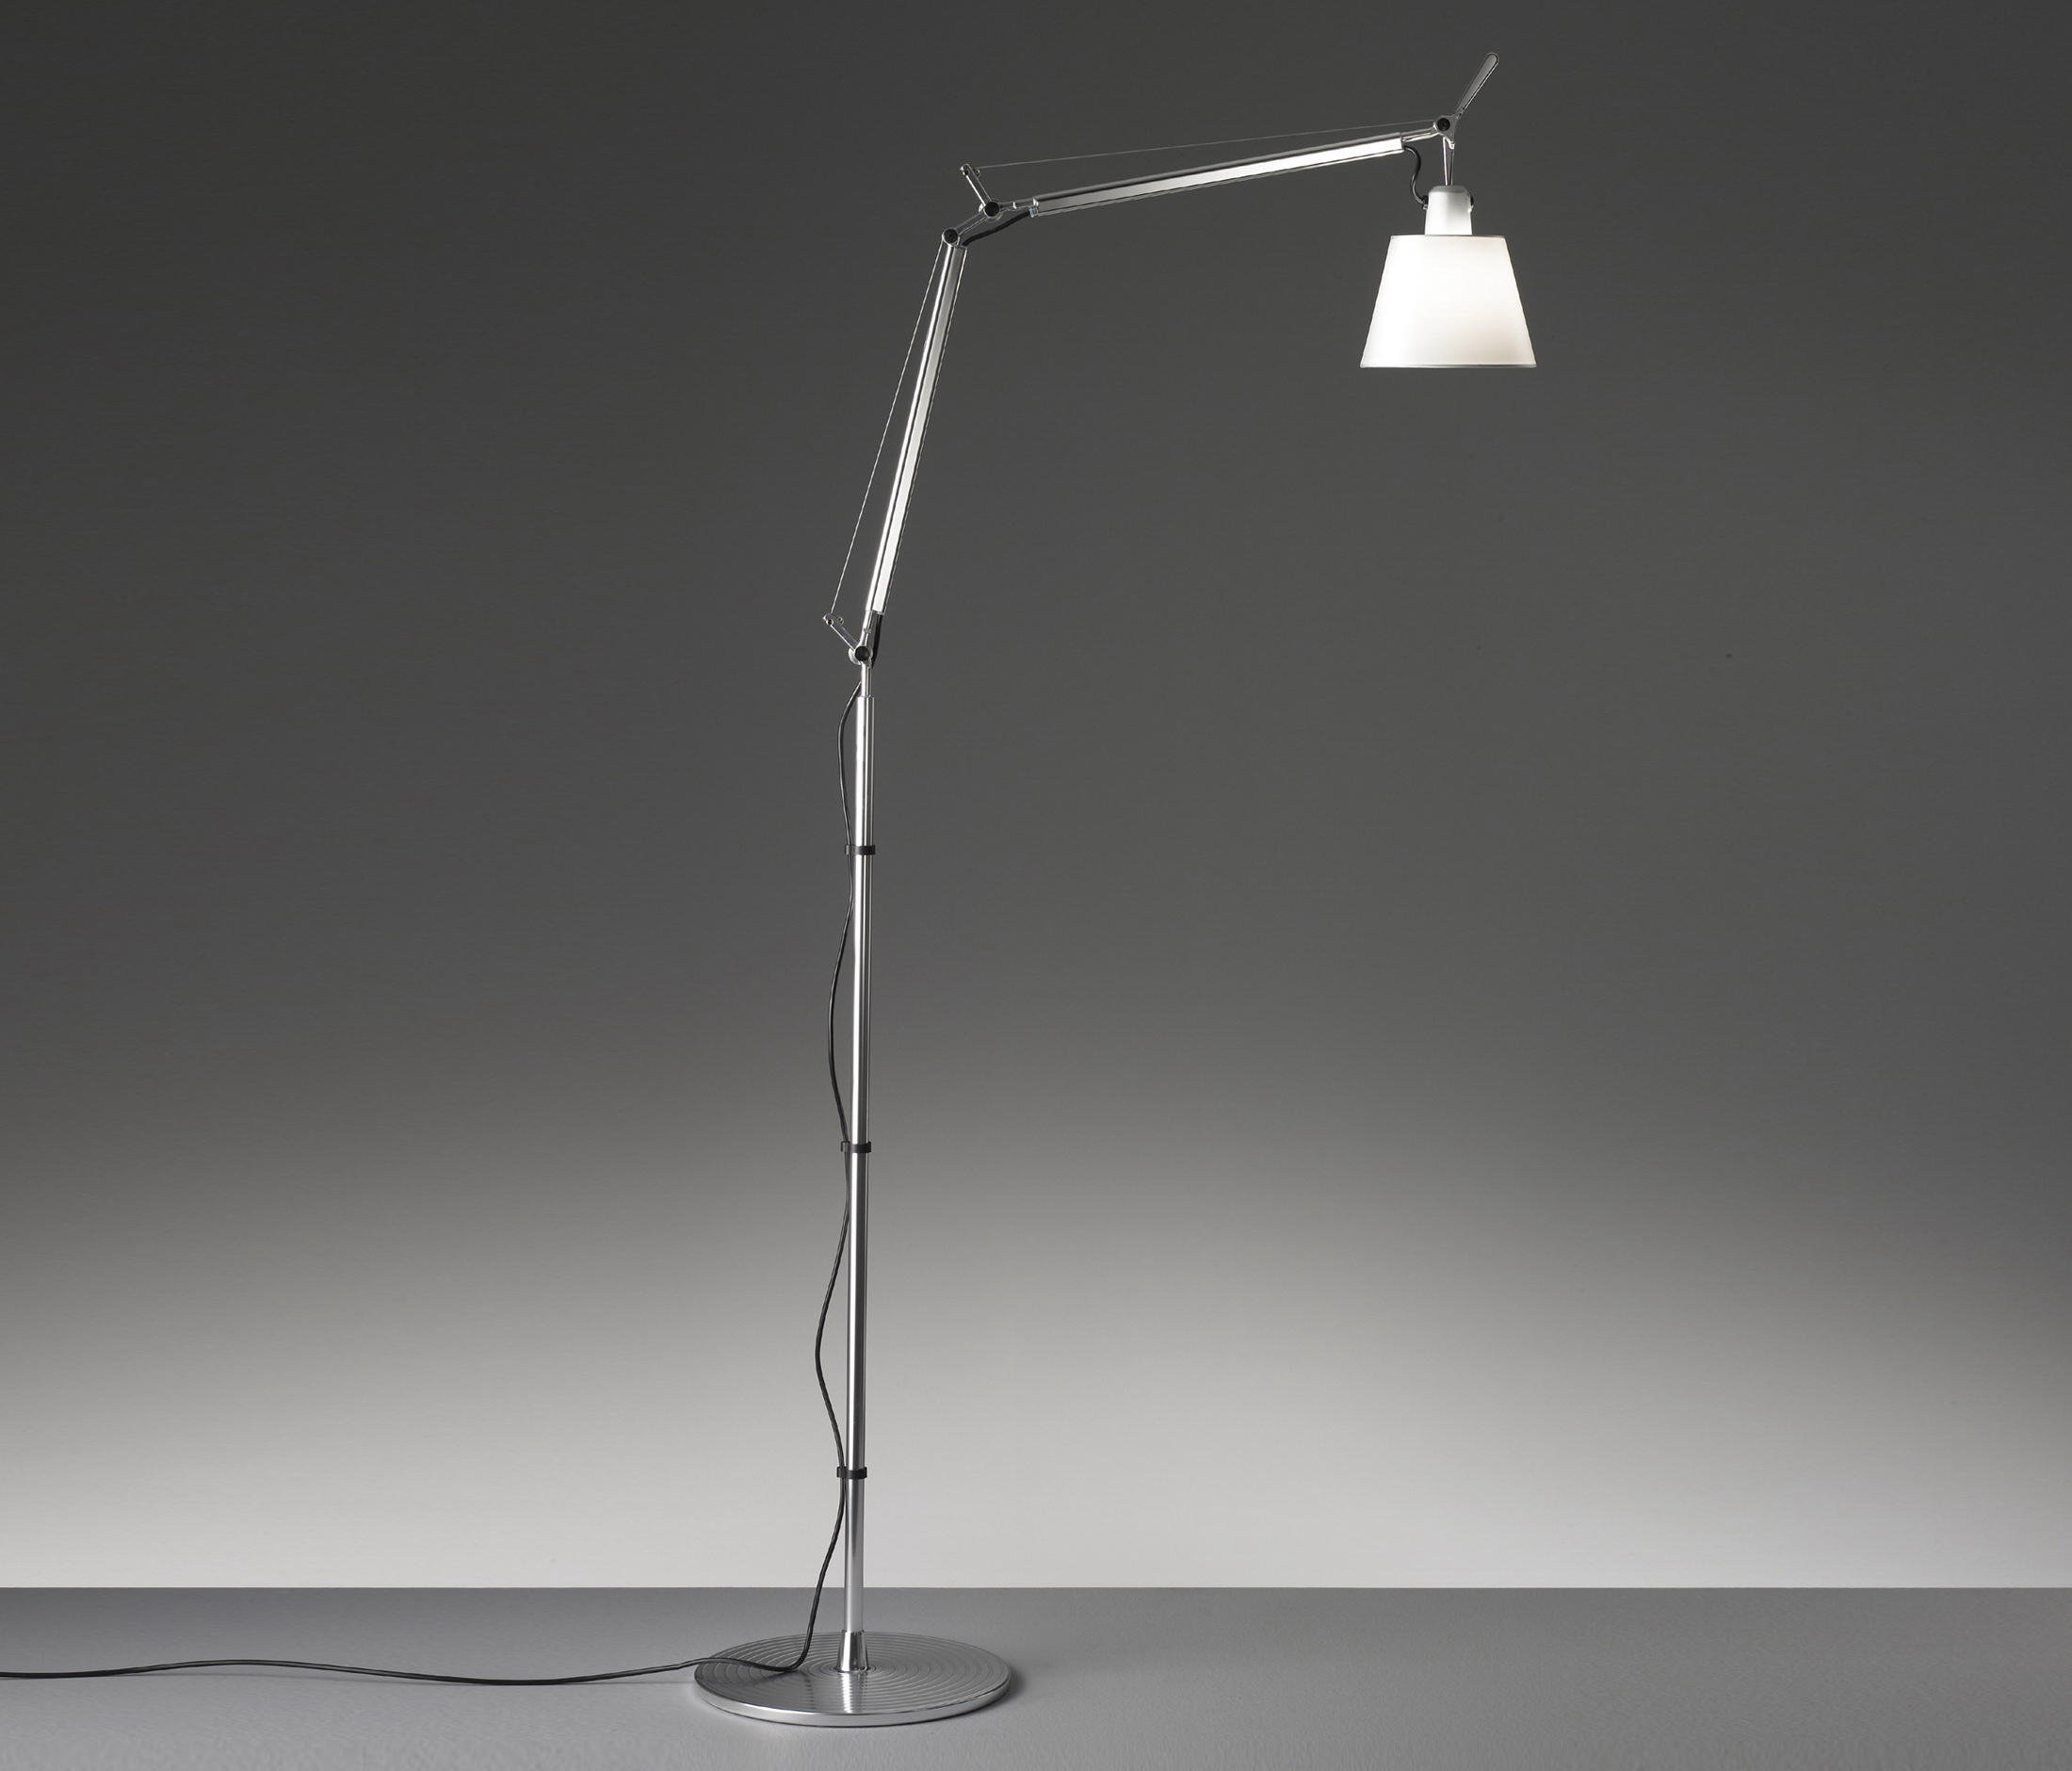 tolomeo basculante floor lamp general lighting from artemide architonic. Black Bedroom Furniture Sets. Home Design Ideas